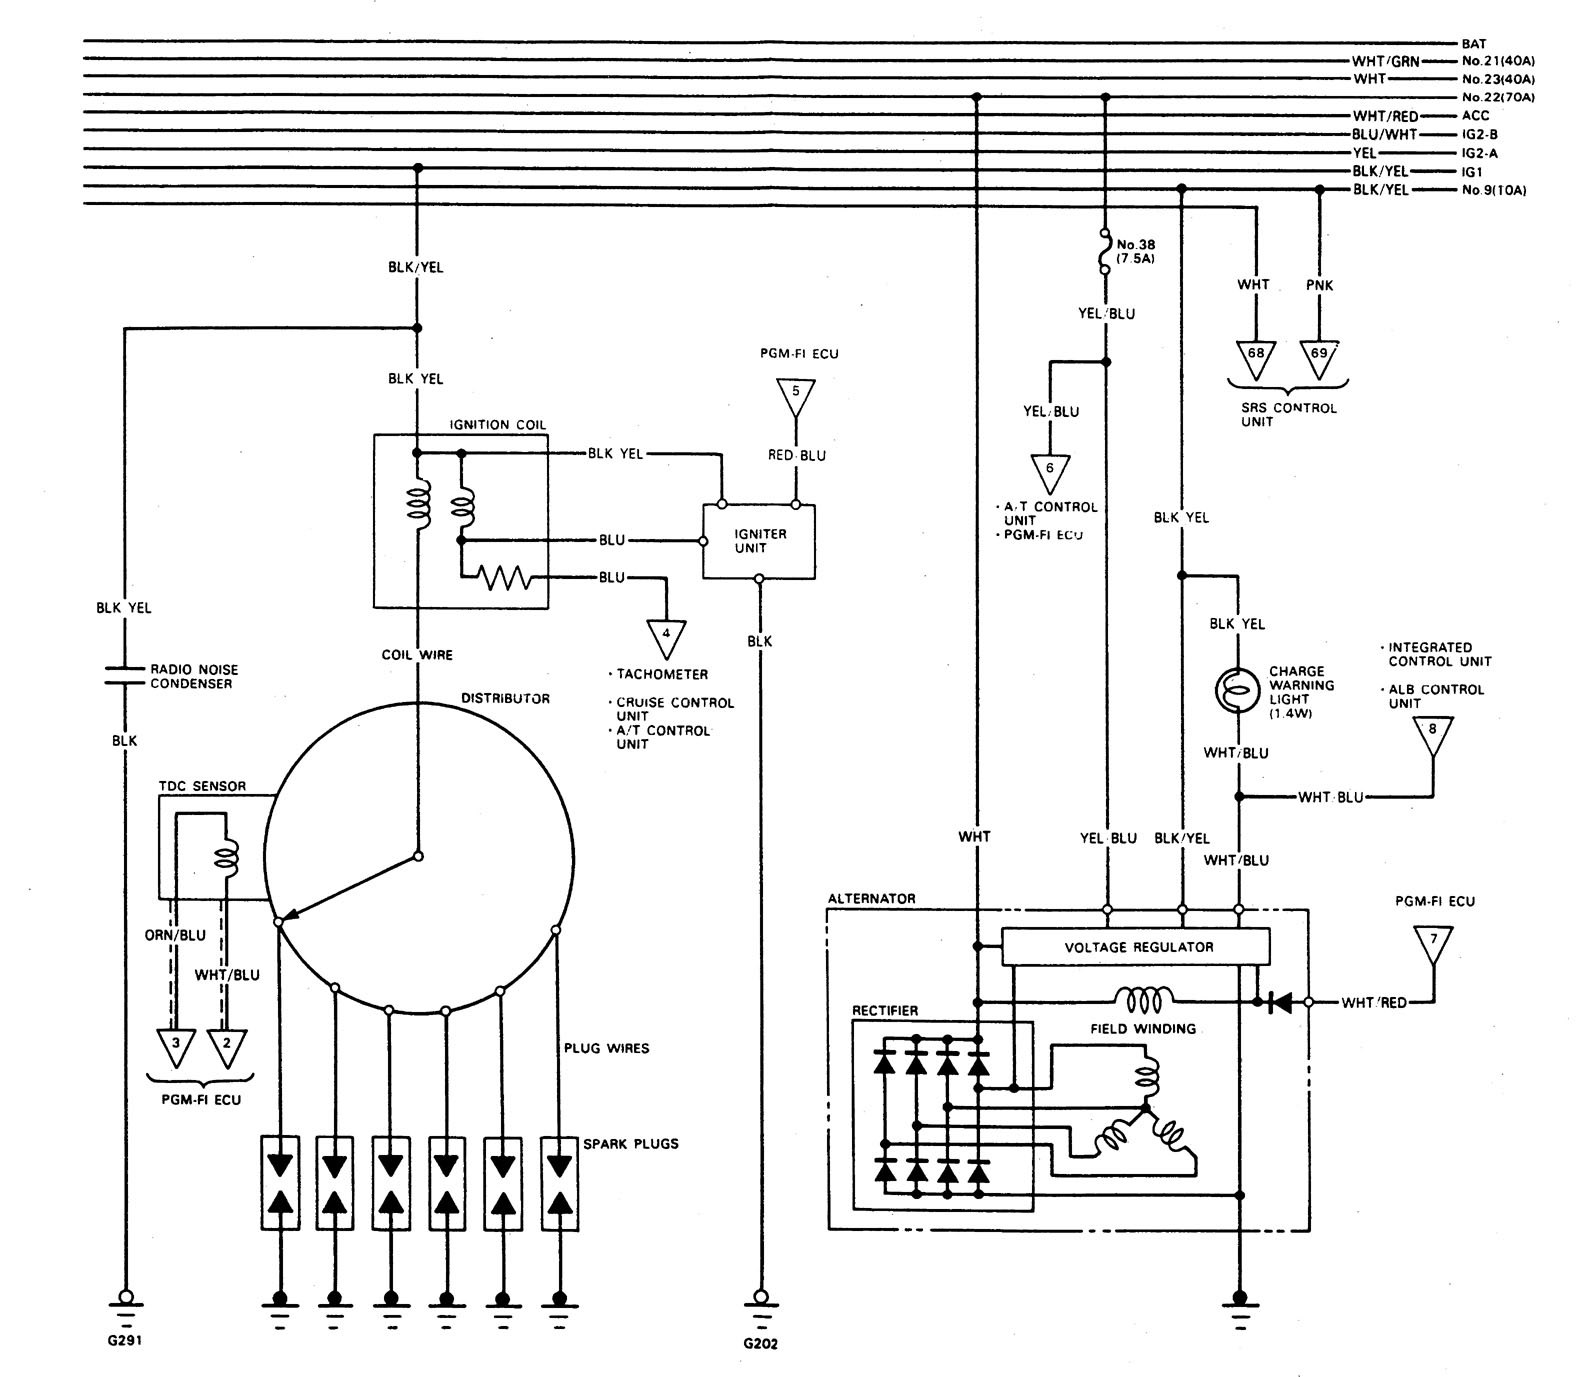 2000 Dodge Dakota Fuse Box Diagram Under Hood And. Dodge